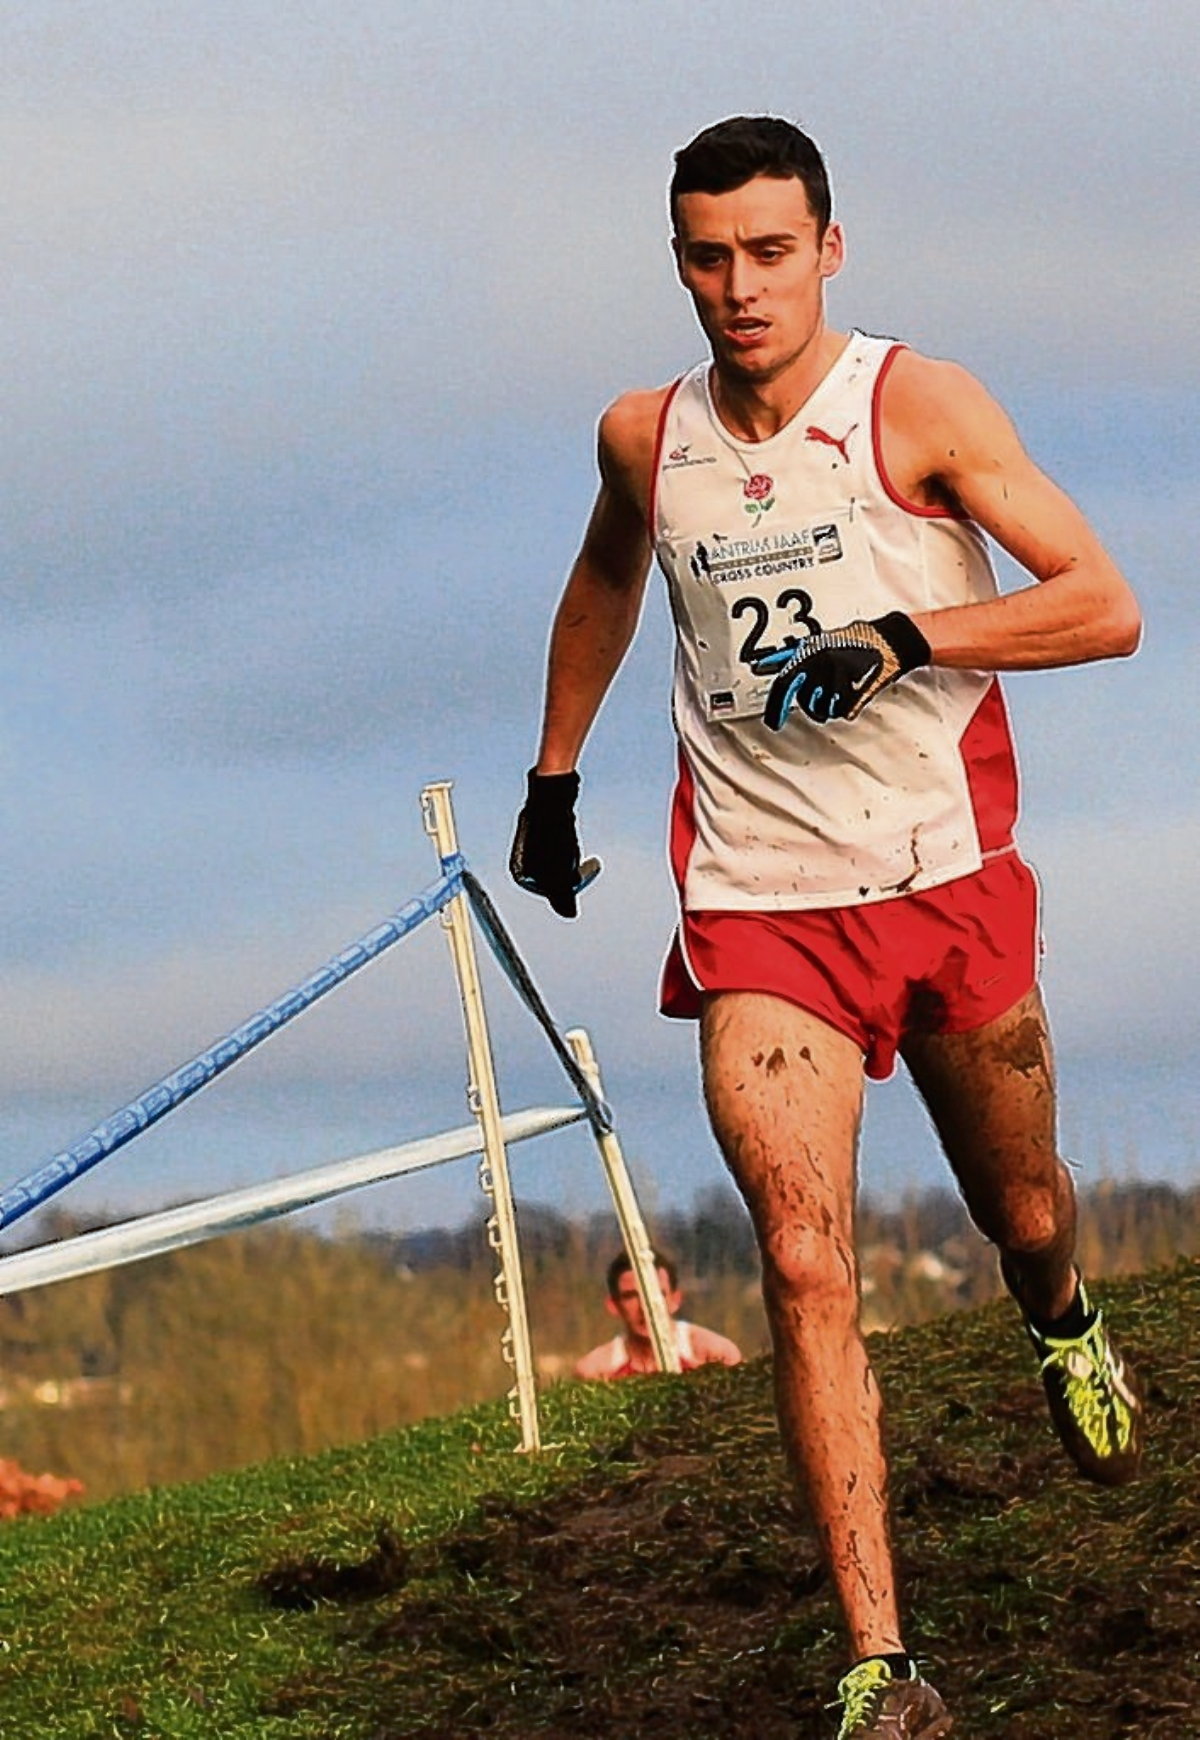 Adam Hickey in Antrim (pic courtesy of nirunning.co.uk